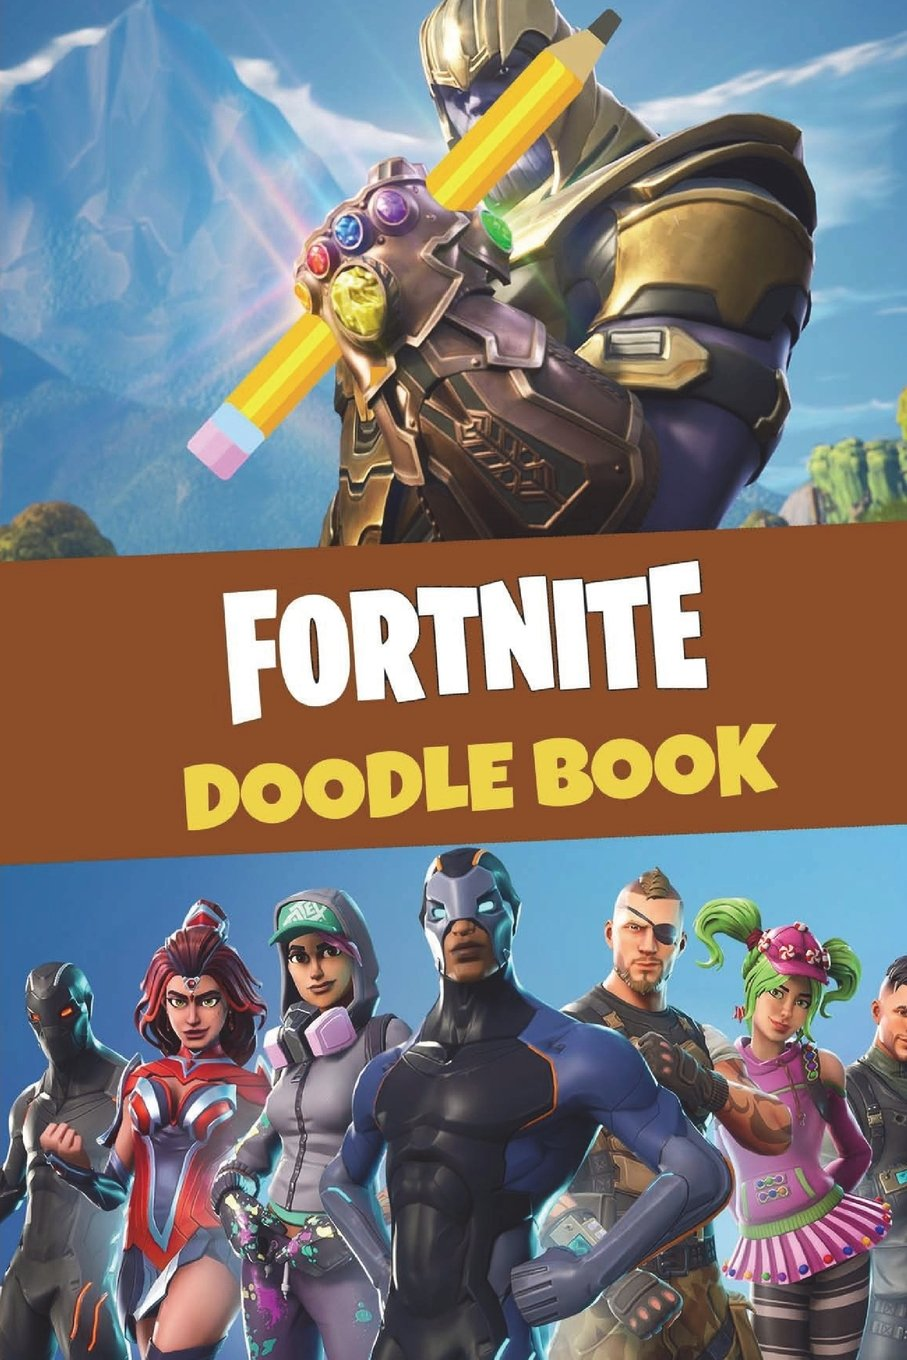 fortnite doodle book over 150 pages for you to draw your favourite characters map concepts and weapon designs all included in an awesome high quality - fortnite books free